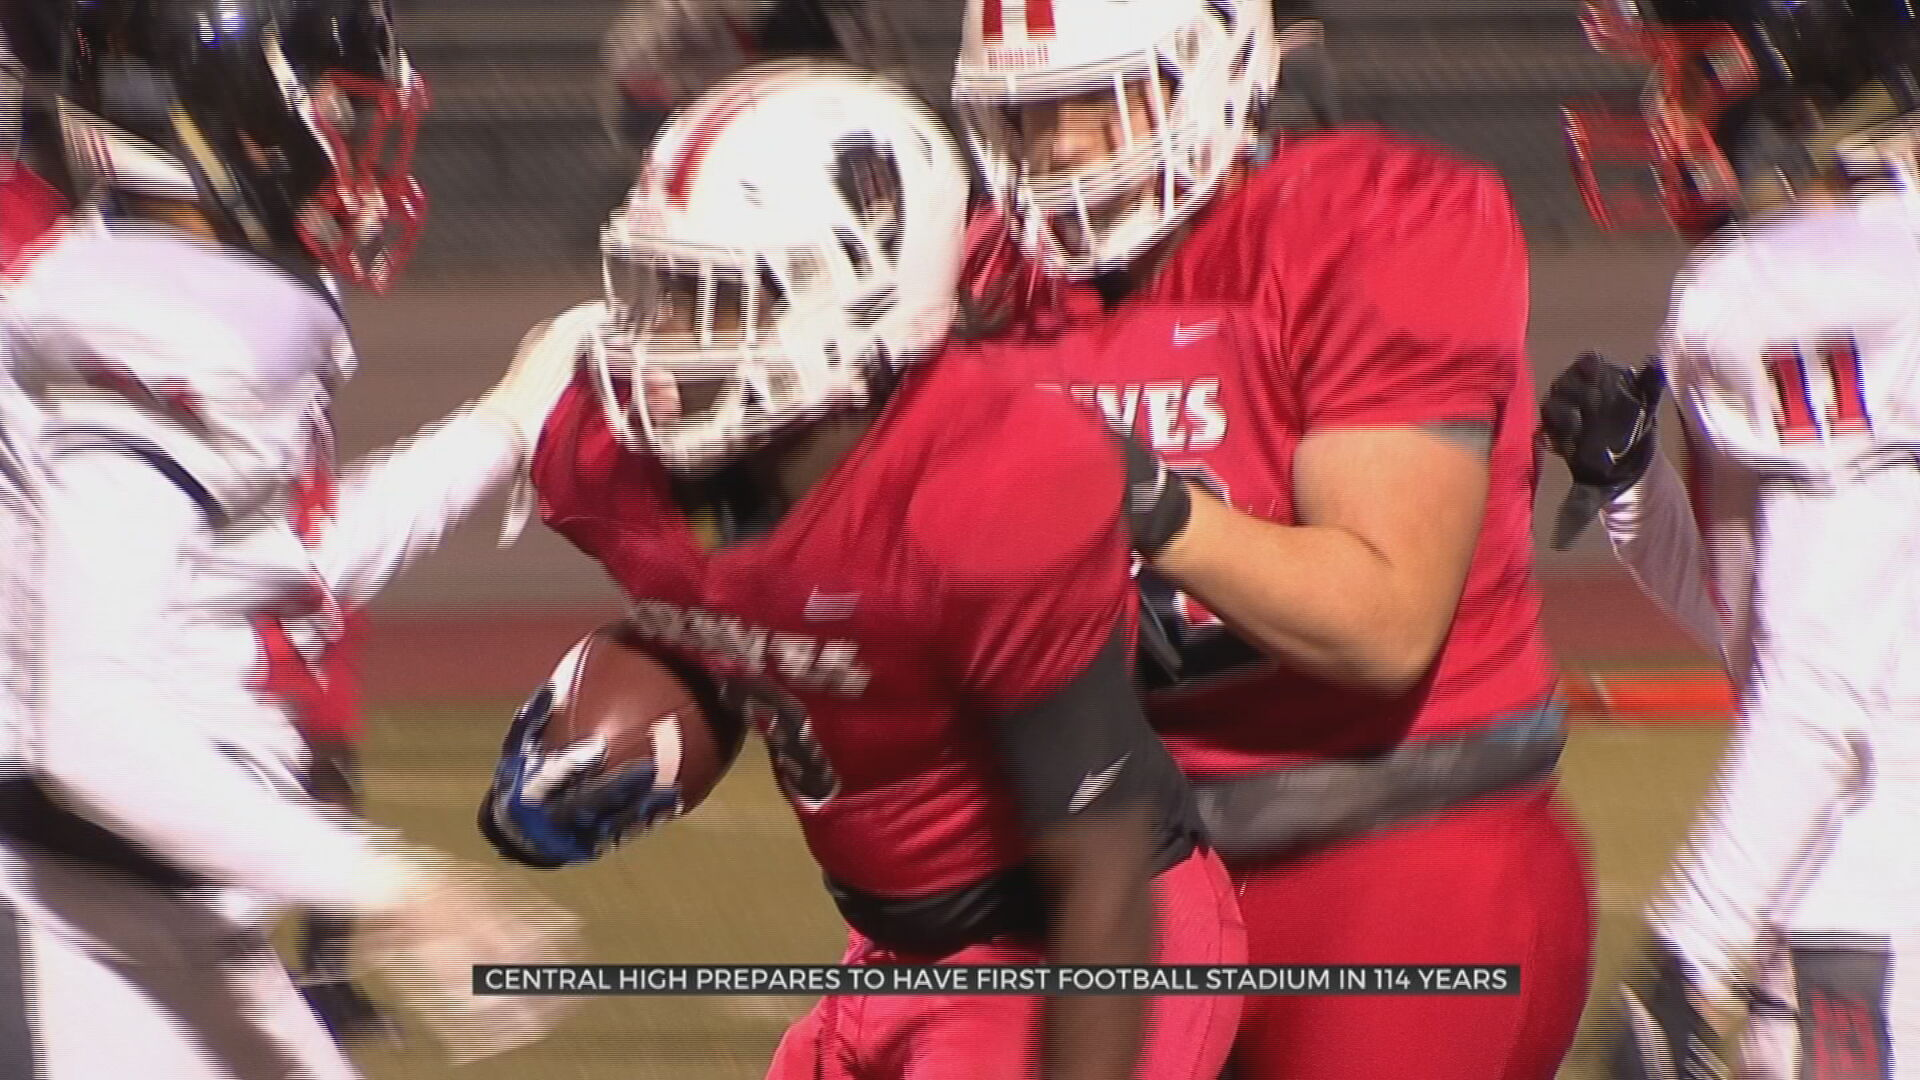 Central High School Prepares To Have First Football Stadium In 114 Years